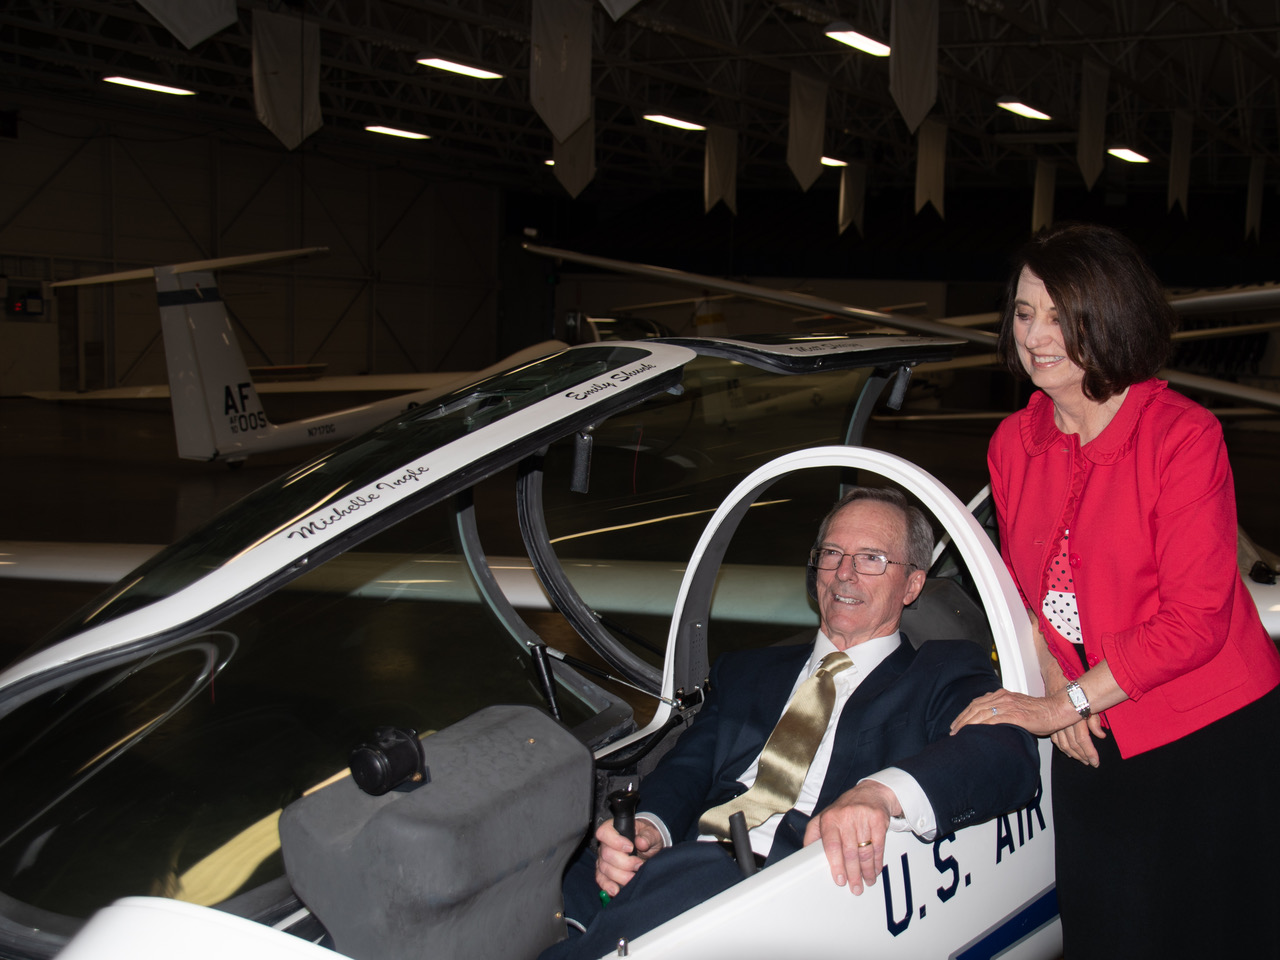 Sister Kathryn S. Callister watches in anticipation as Brother Callister takes the controls of a practice glider used to train future pilots at USAFA.